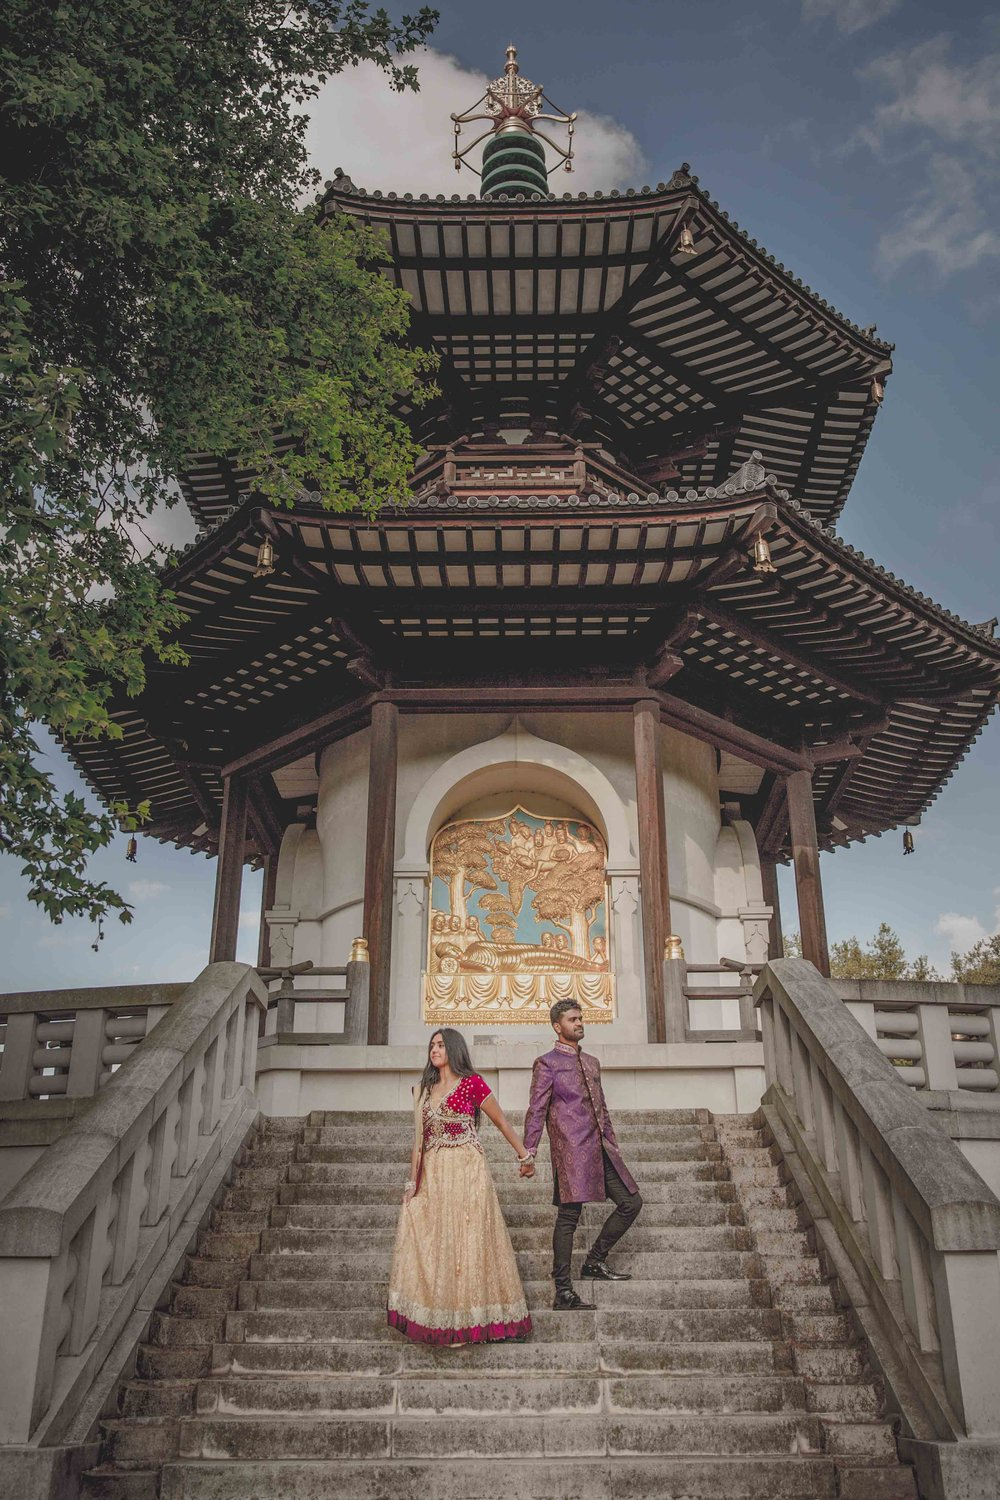 Battersea-park-pre-wedding-photoshoot-shoot-london-asian-wedding-photographer-natalia-smith-photography-9.jpg